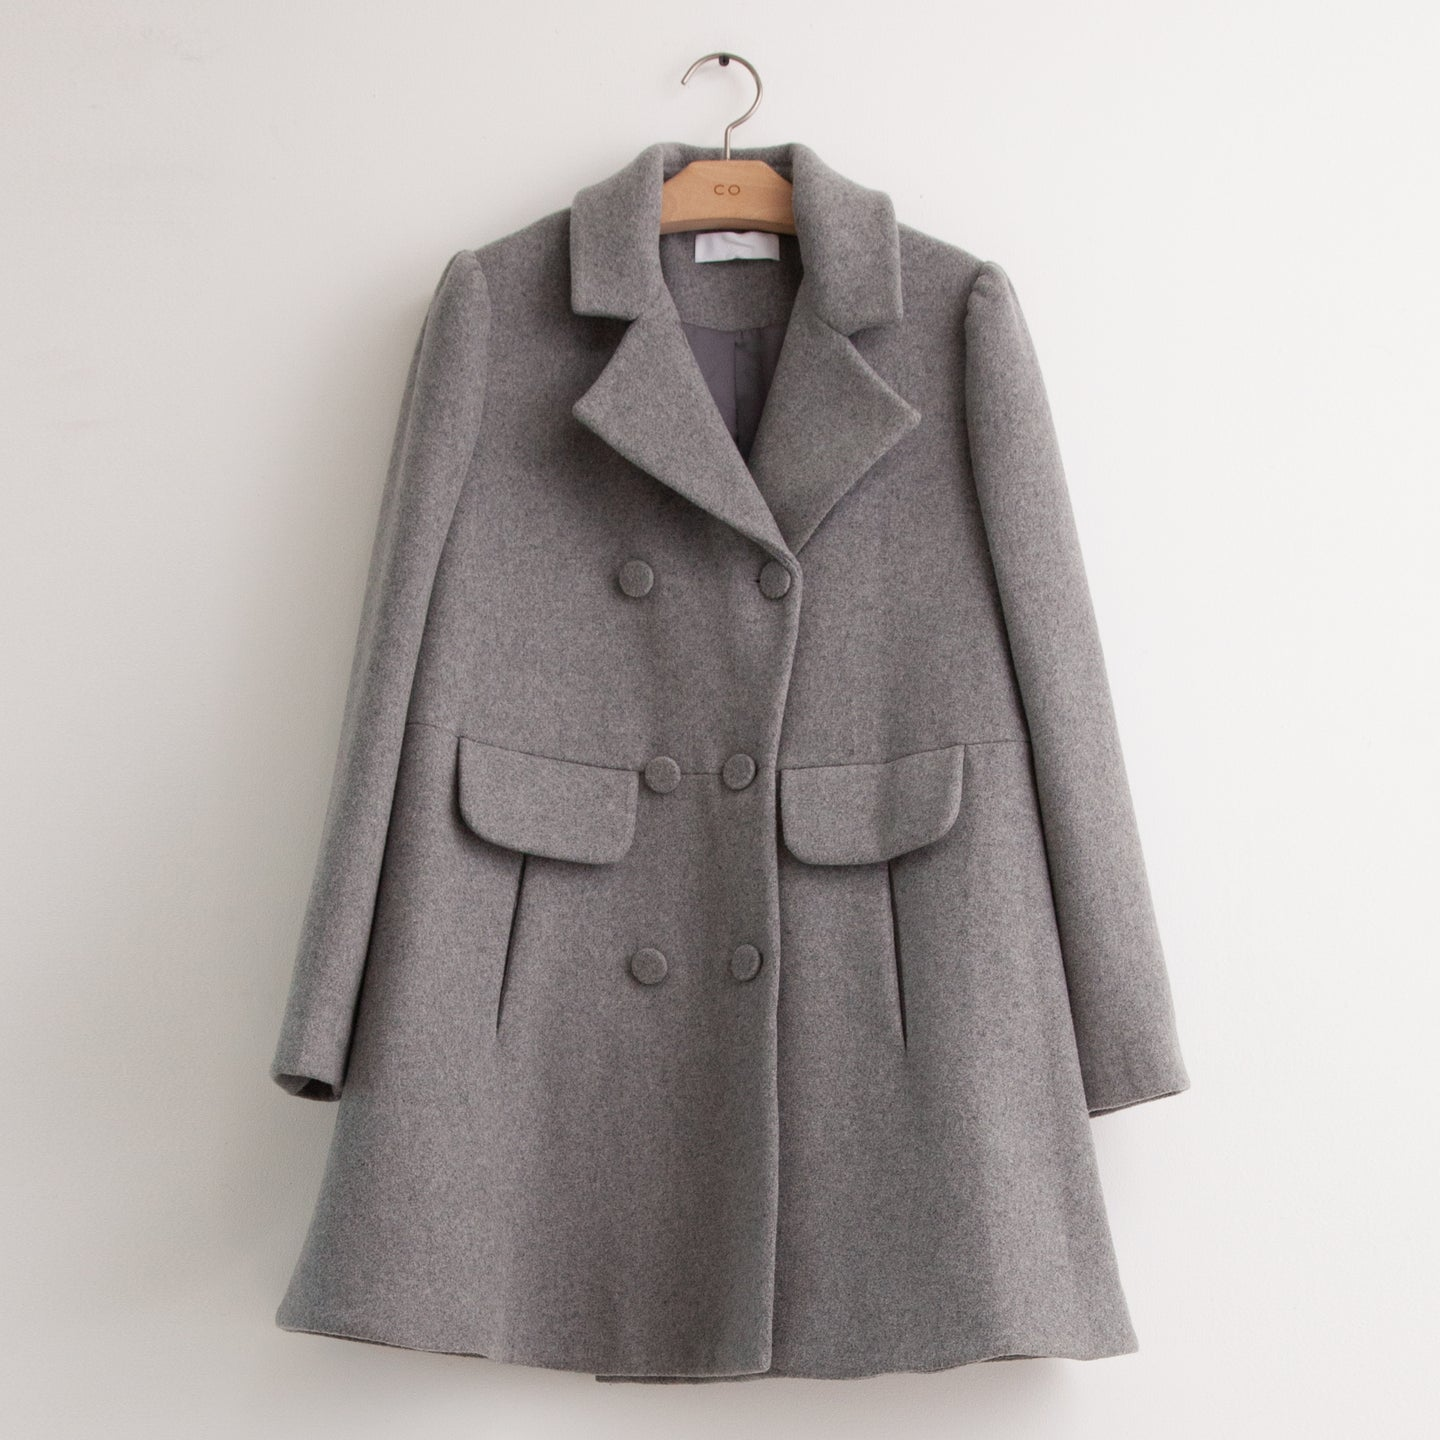 CO - A line pea coat in grey wool melton